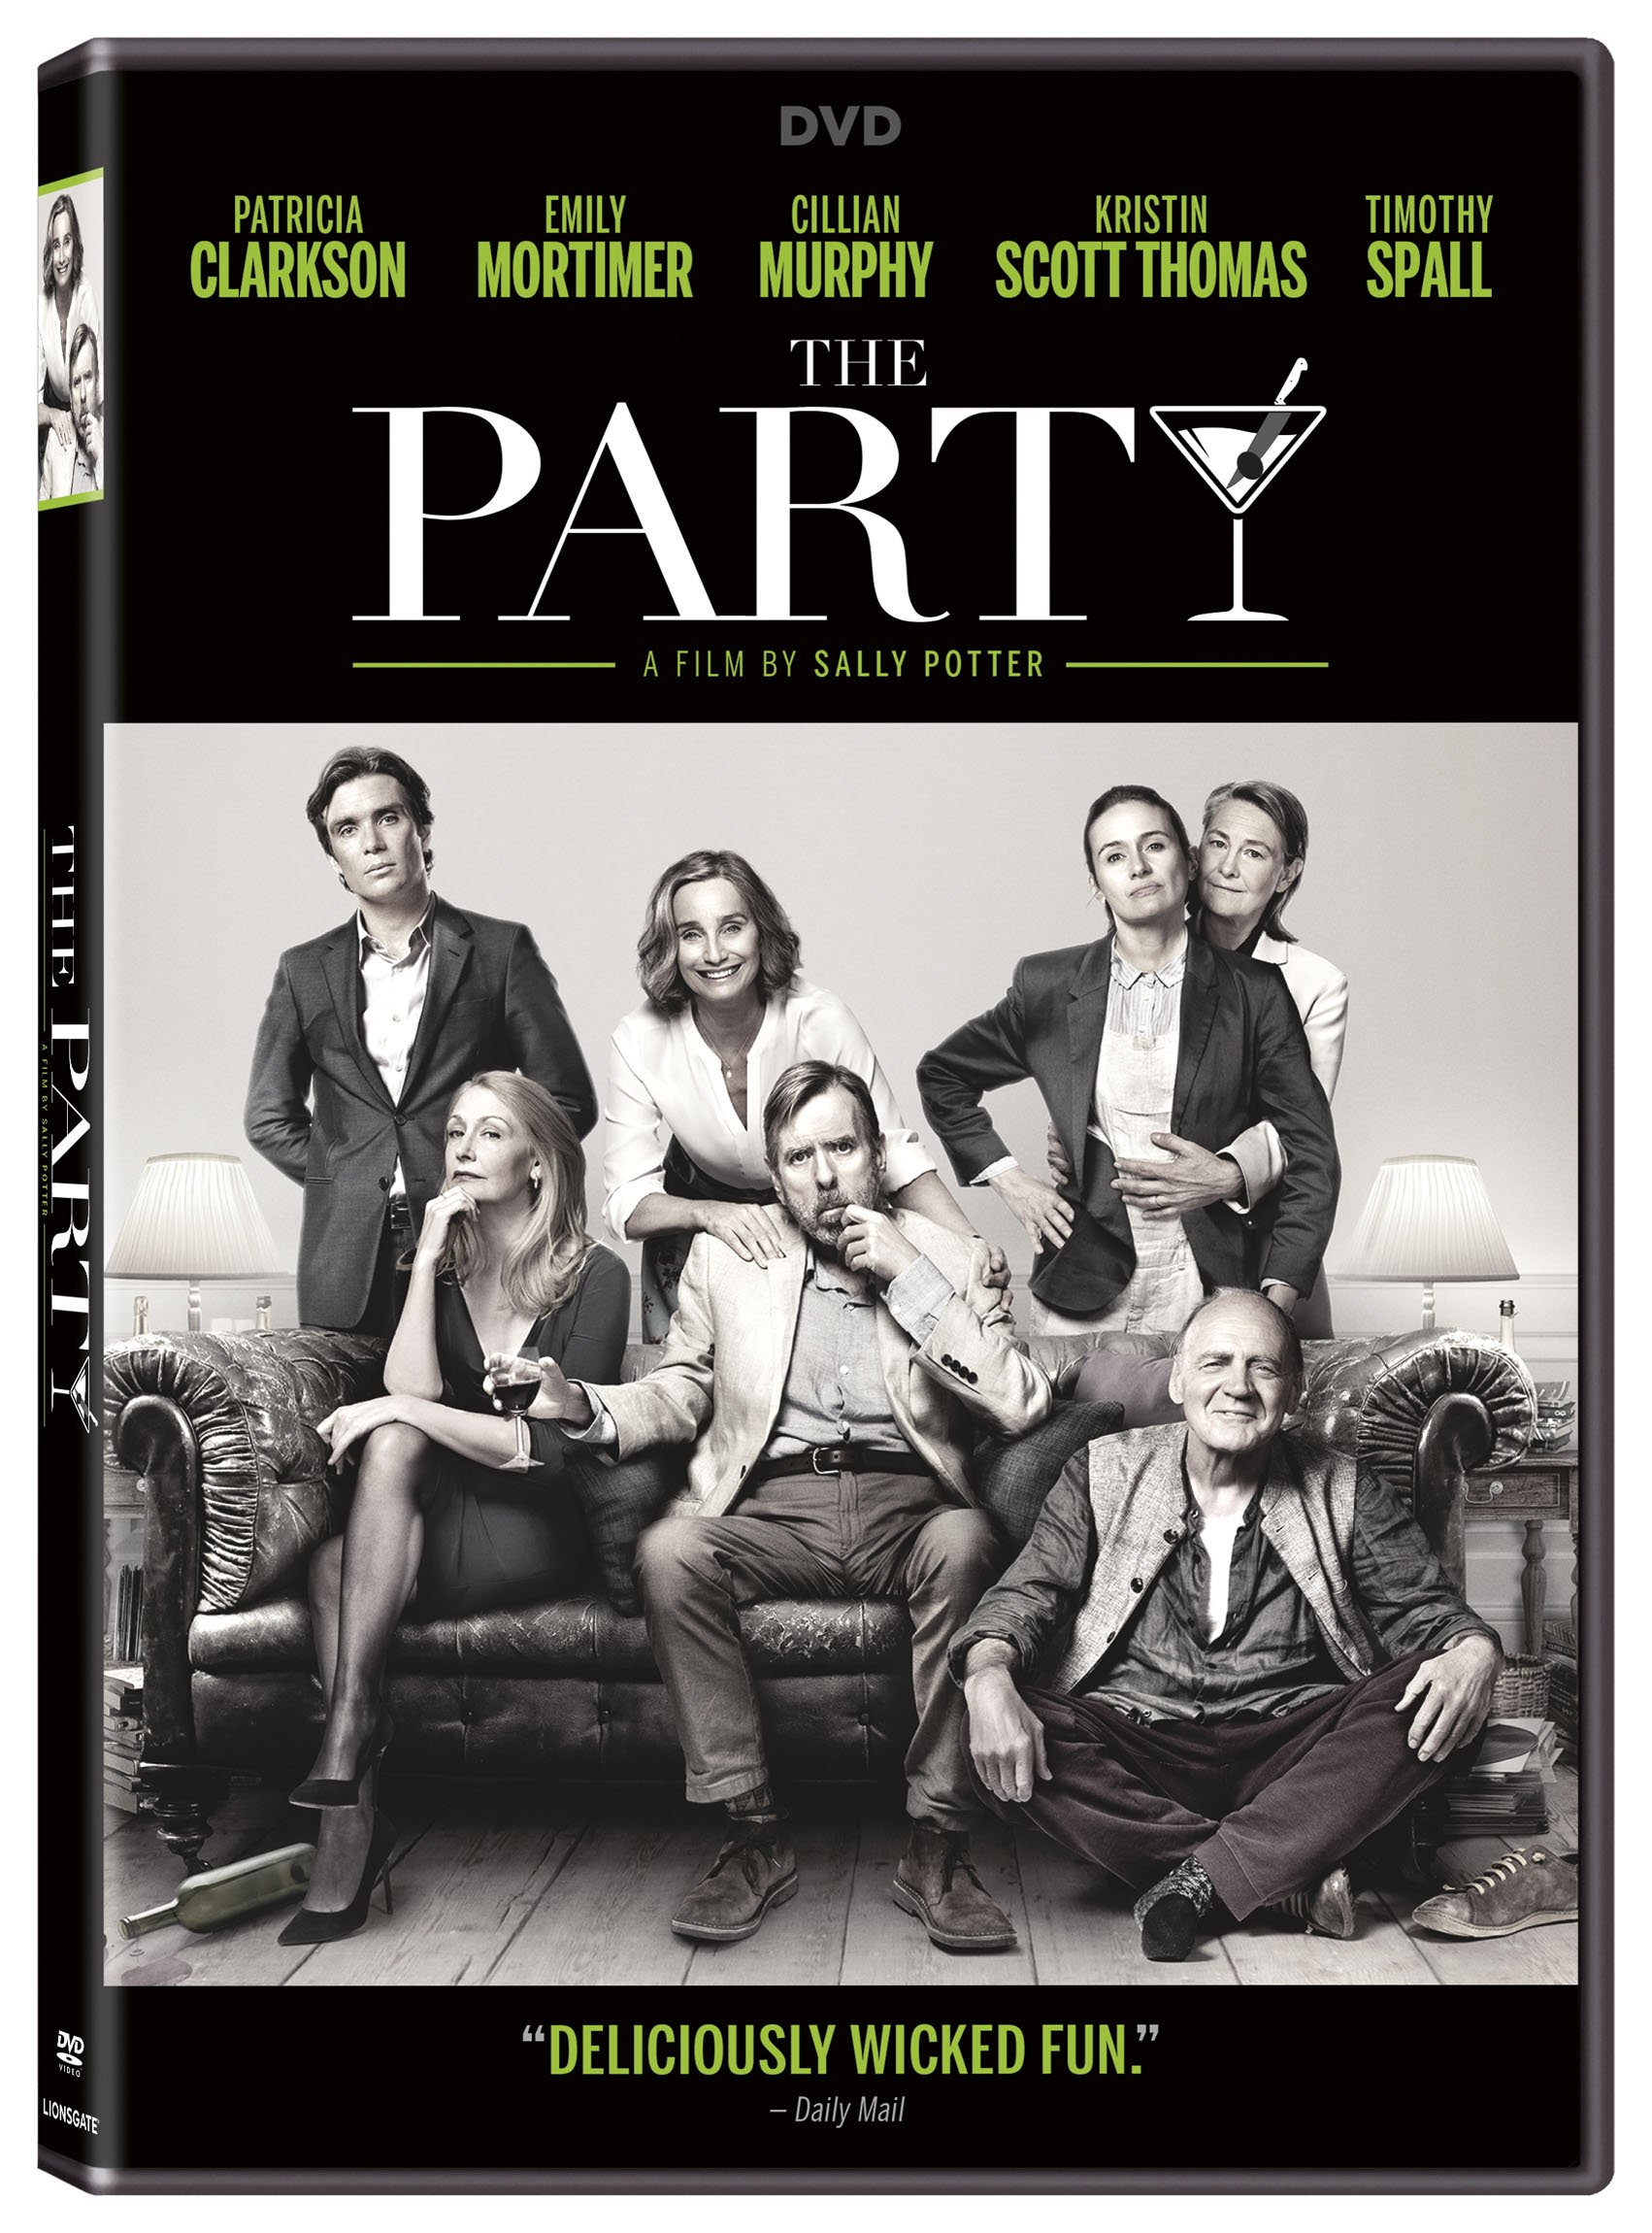 DVD : The Party (Widescreen, AC-3, Dolby, Subtitled)